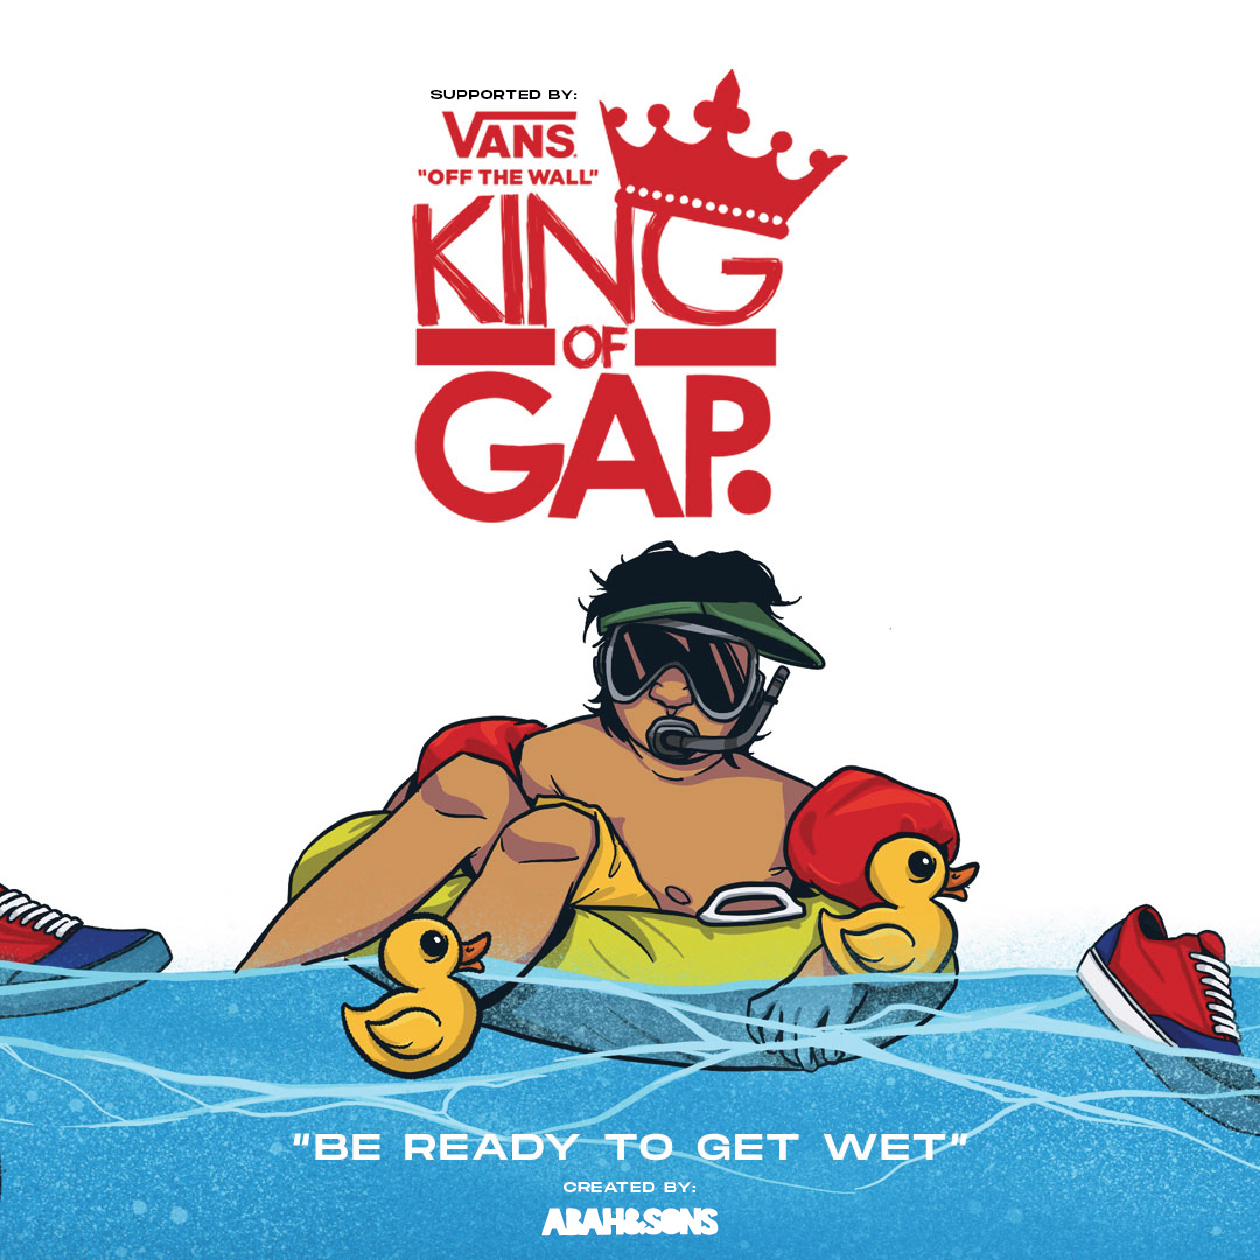 King of Gap Malaysia 2019. - PRESENTED BY VANS.Date: Sun, 21st April 2019Time: 12PM - 9PMLocation: Vision Studio, BangsarGap theme: WatergapFormat: Best Trick Prizes: 1st Place - RM10,000 | 2nd Place - RM2,000 | 3rd Place - RM1,000